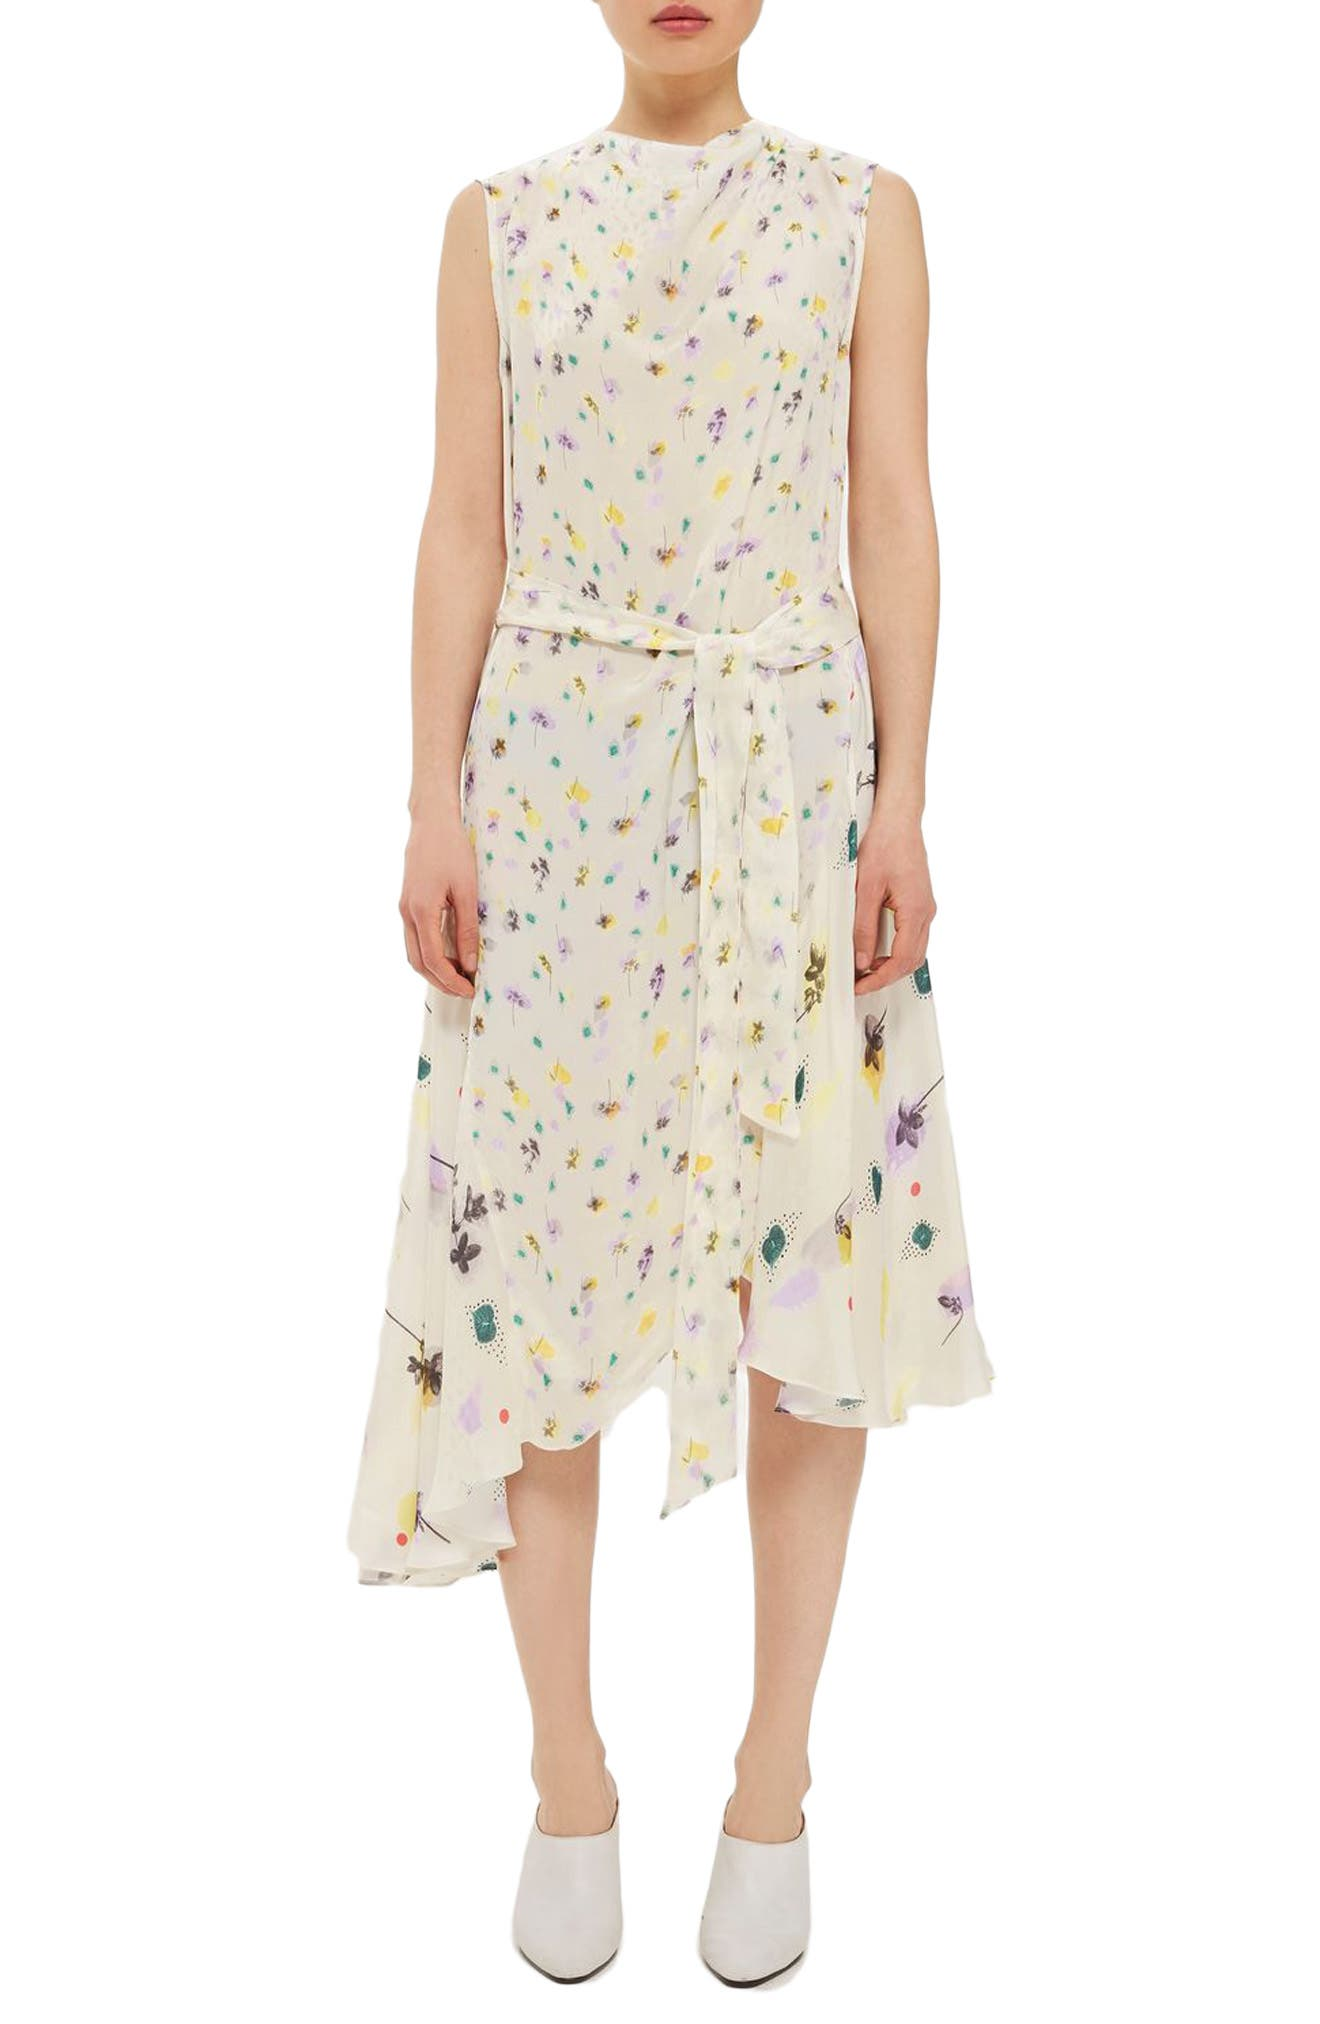 Topshop Boutique Floral Mix Midi Dress